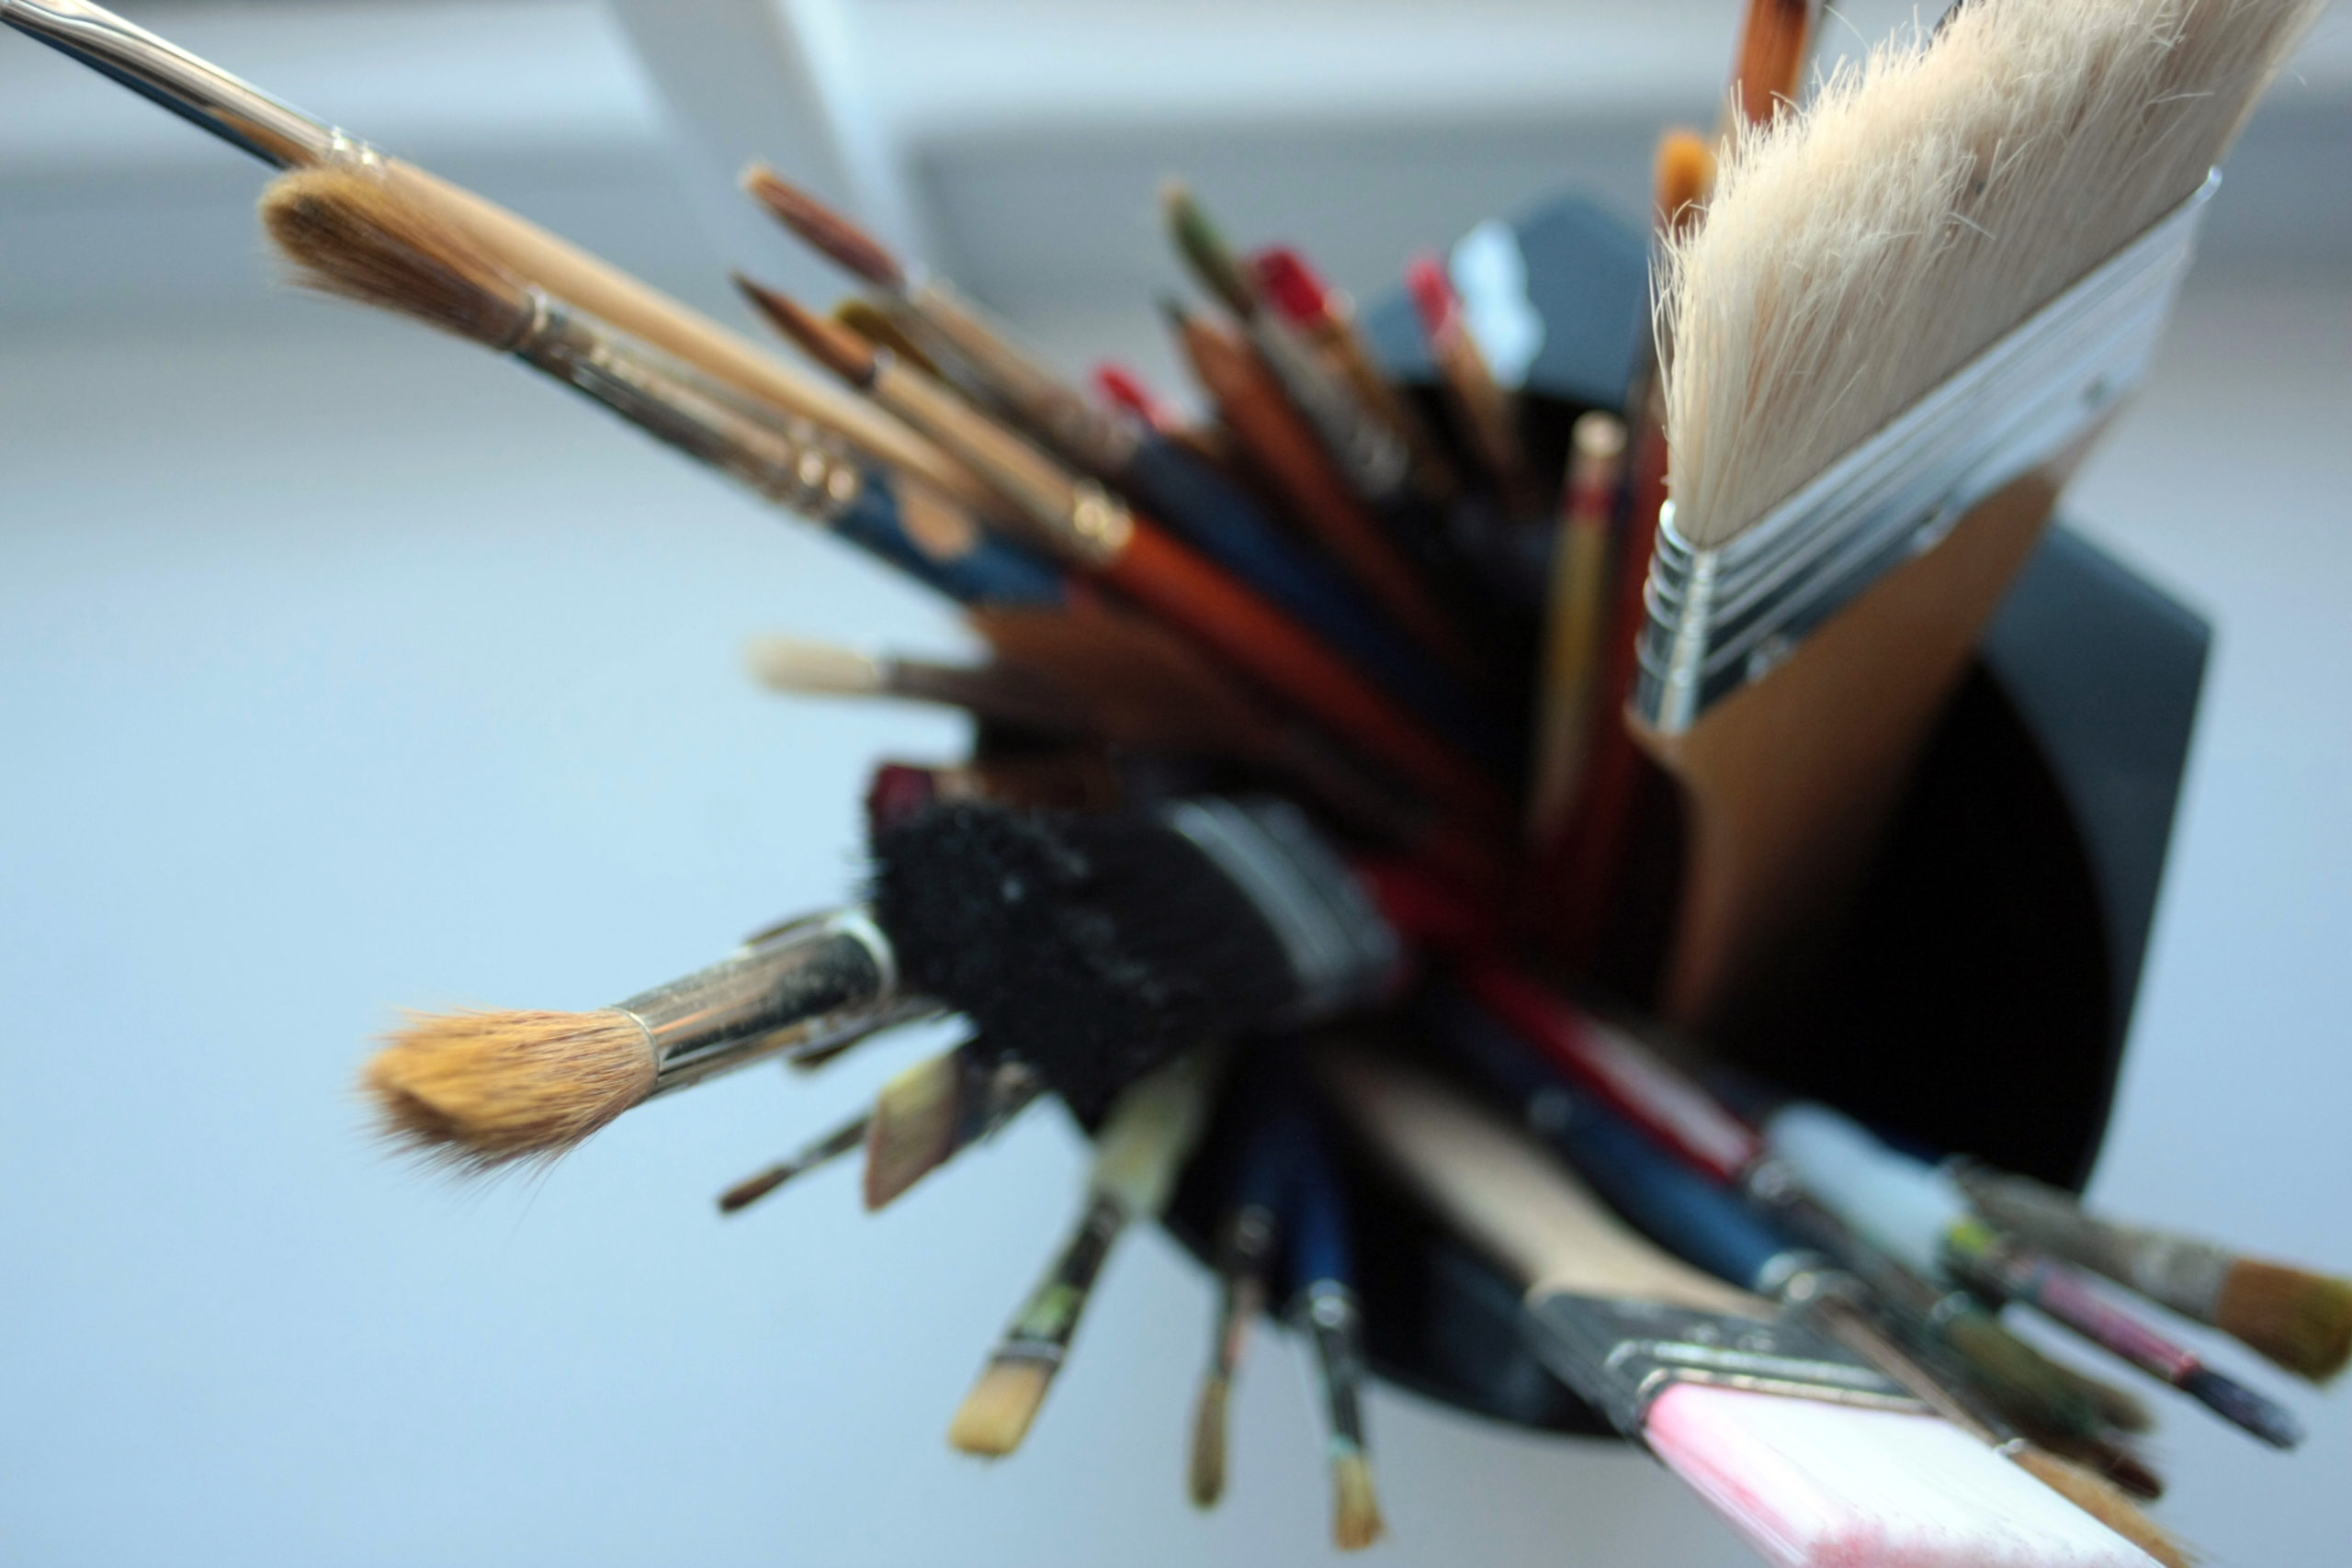 SPACE Colchester Creative Practitioner Support Programme (paint brushes)